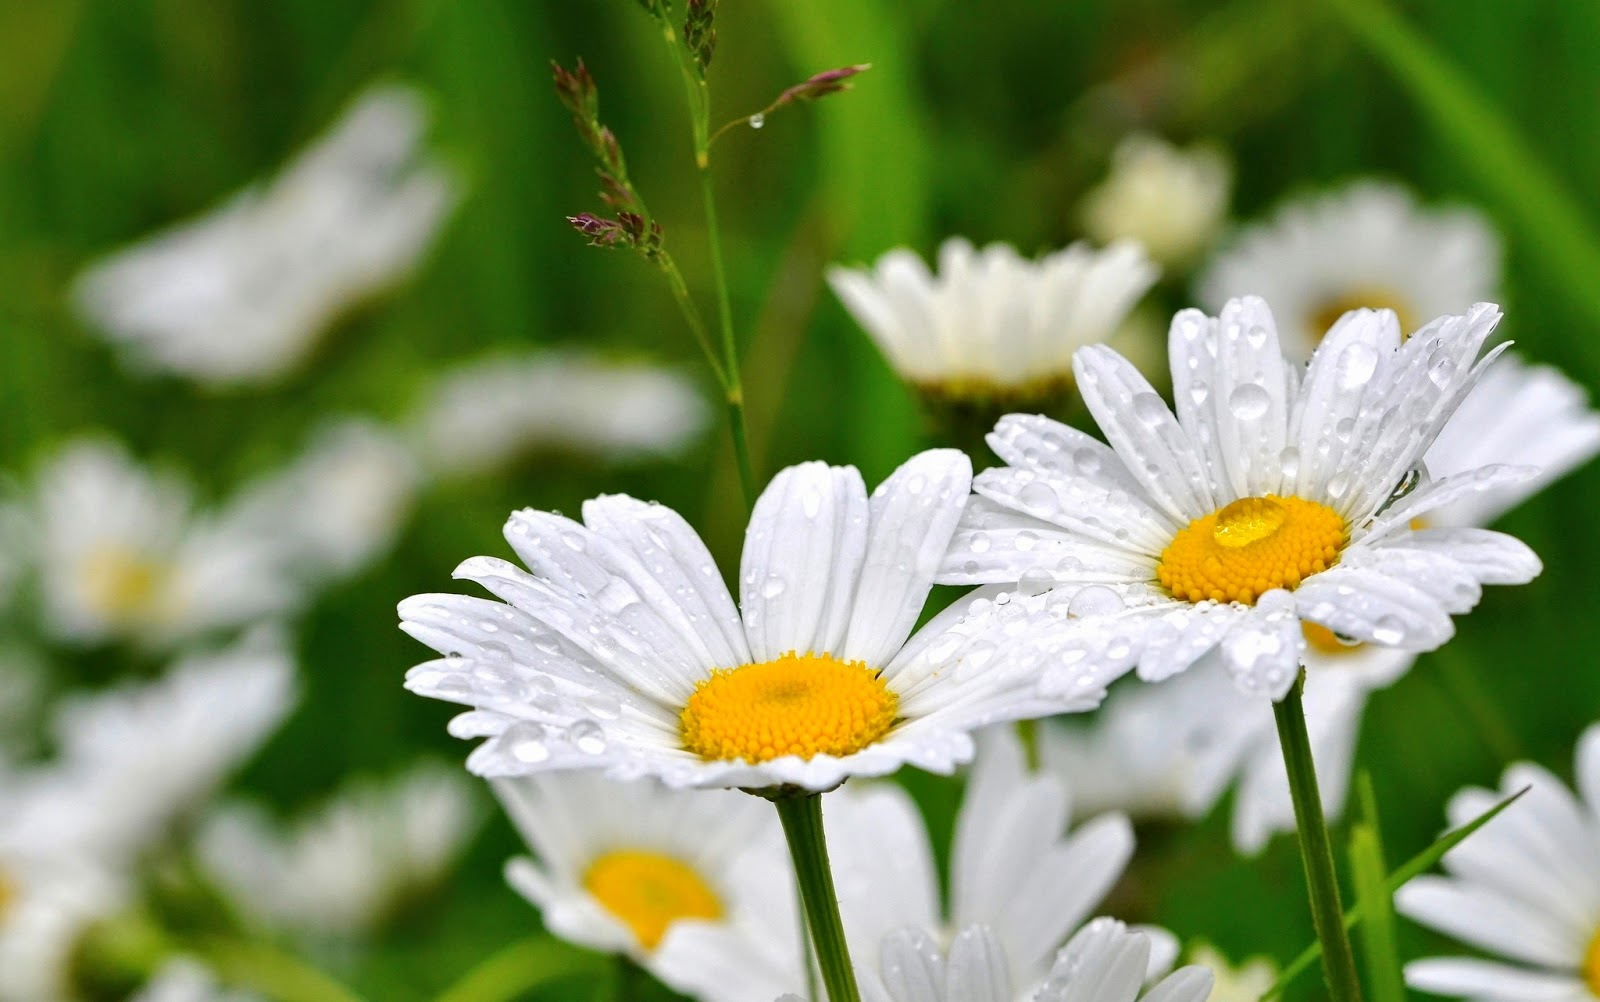 Daisy-flower-wallpaper-for-mobile-tablet-download.jpg